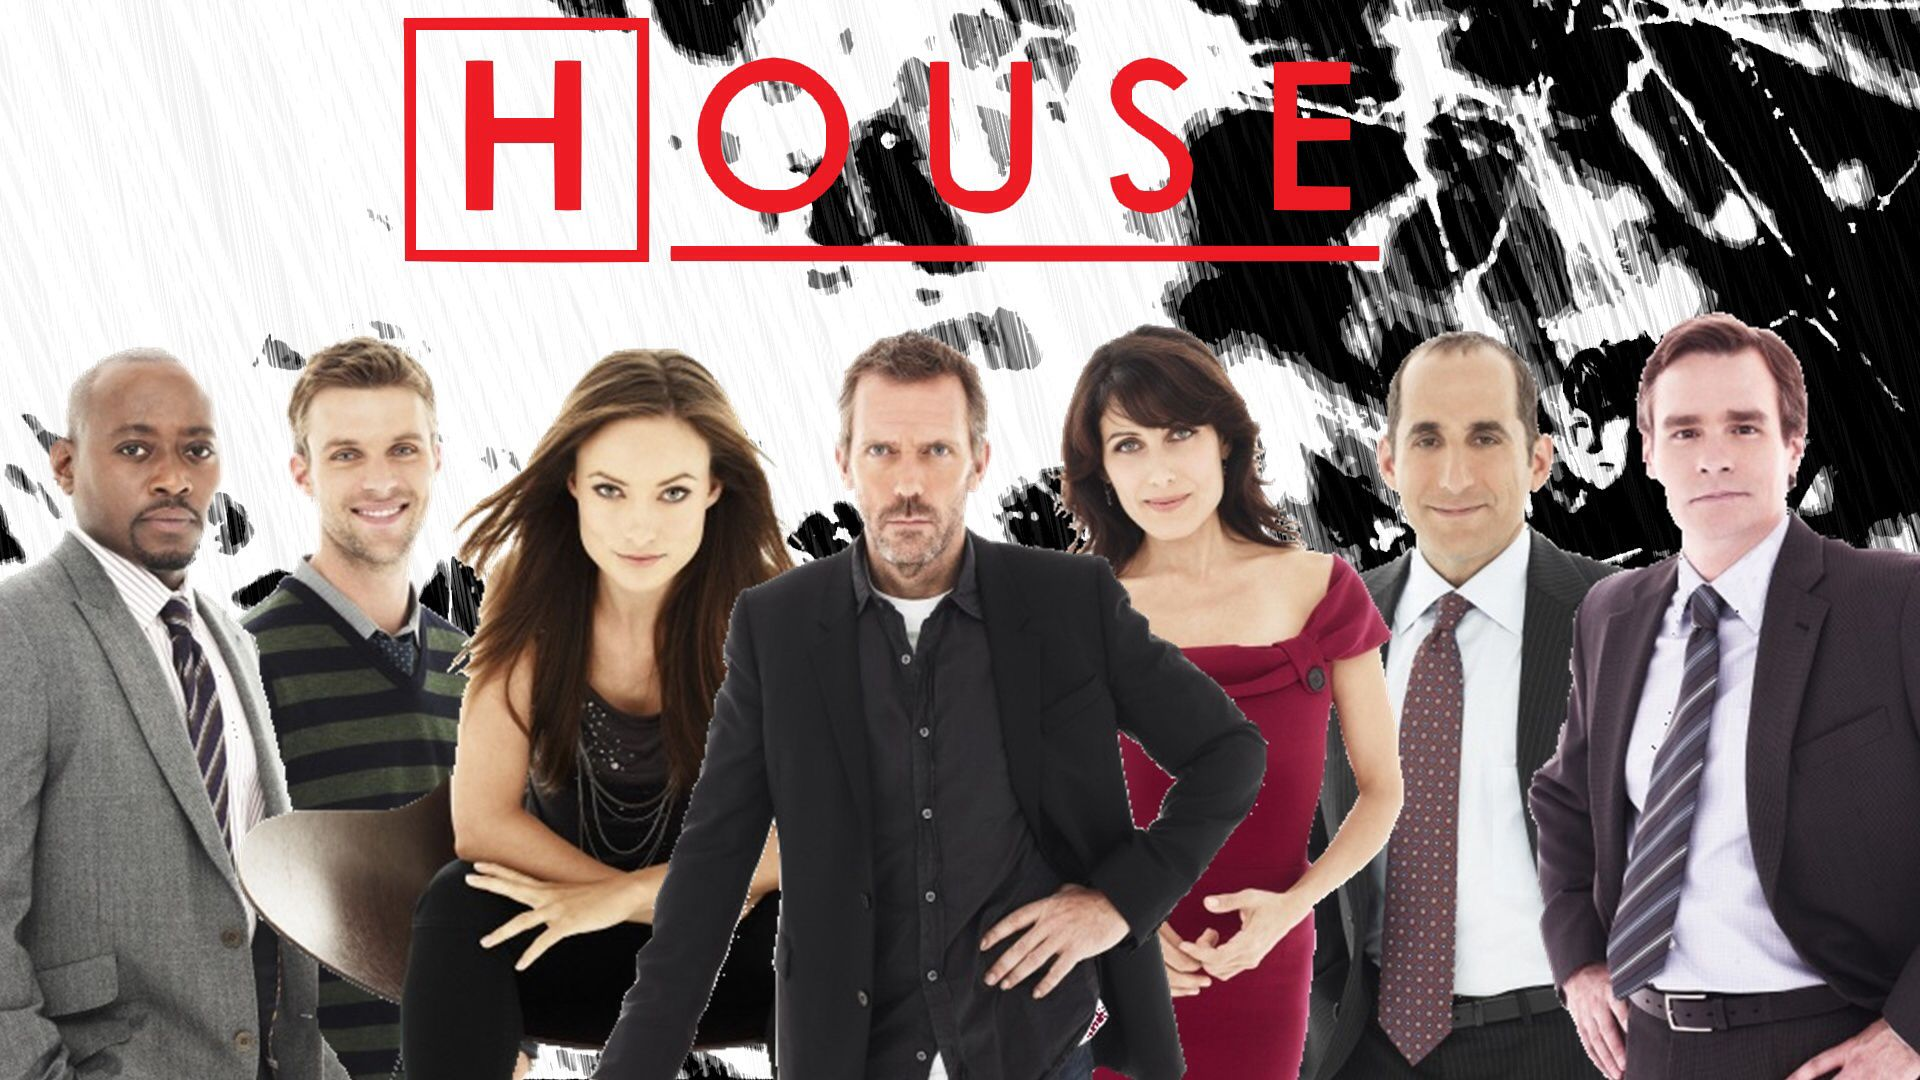 Pin by Lindsay Soberl on House, MD House md, House cast